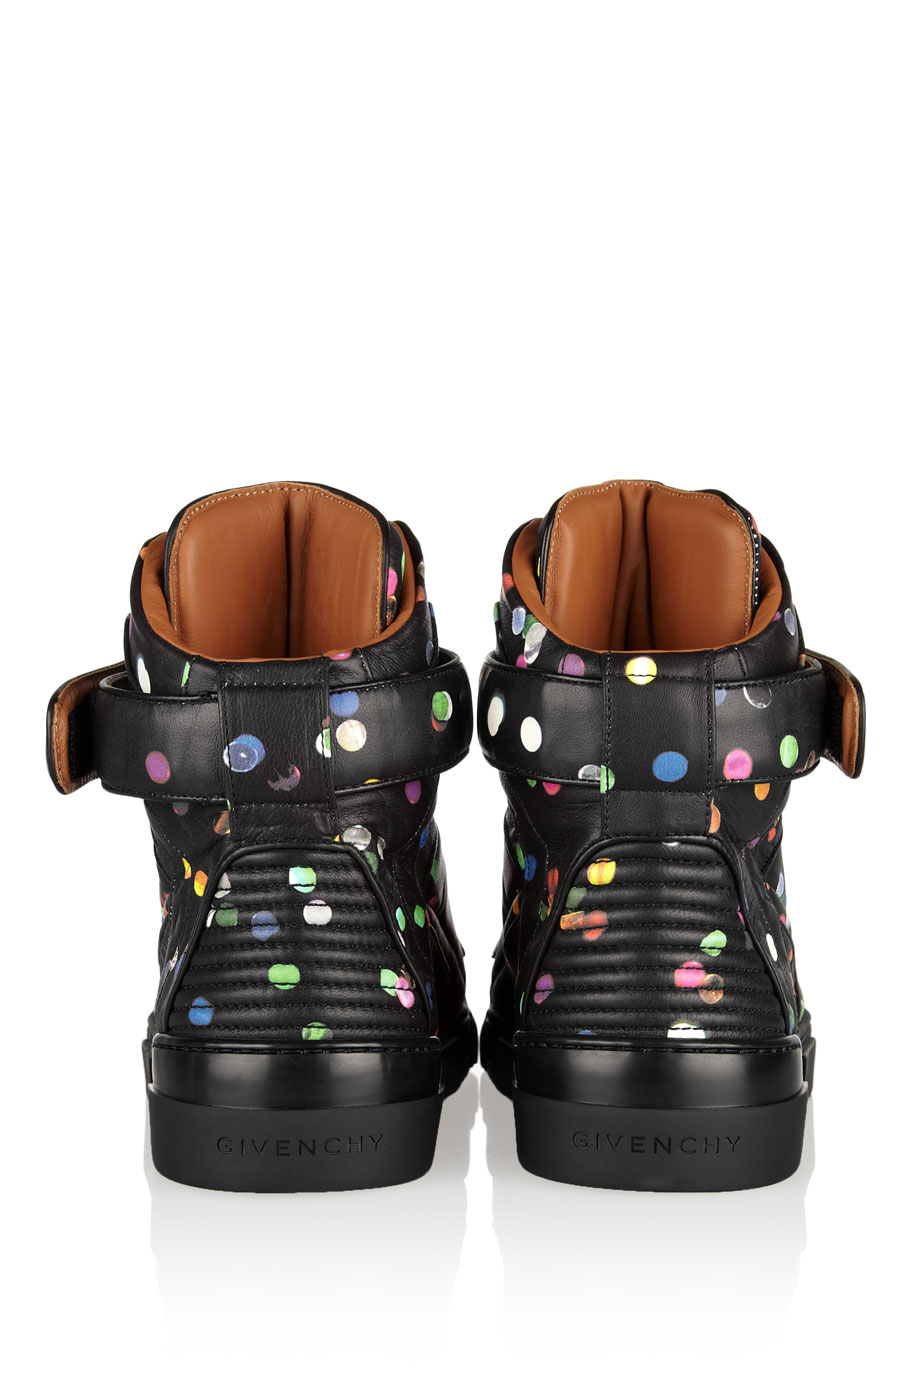 Givenchy Tyson Hightop Sneakers in Confettiprint Leather in Black